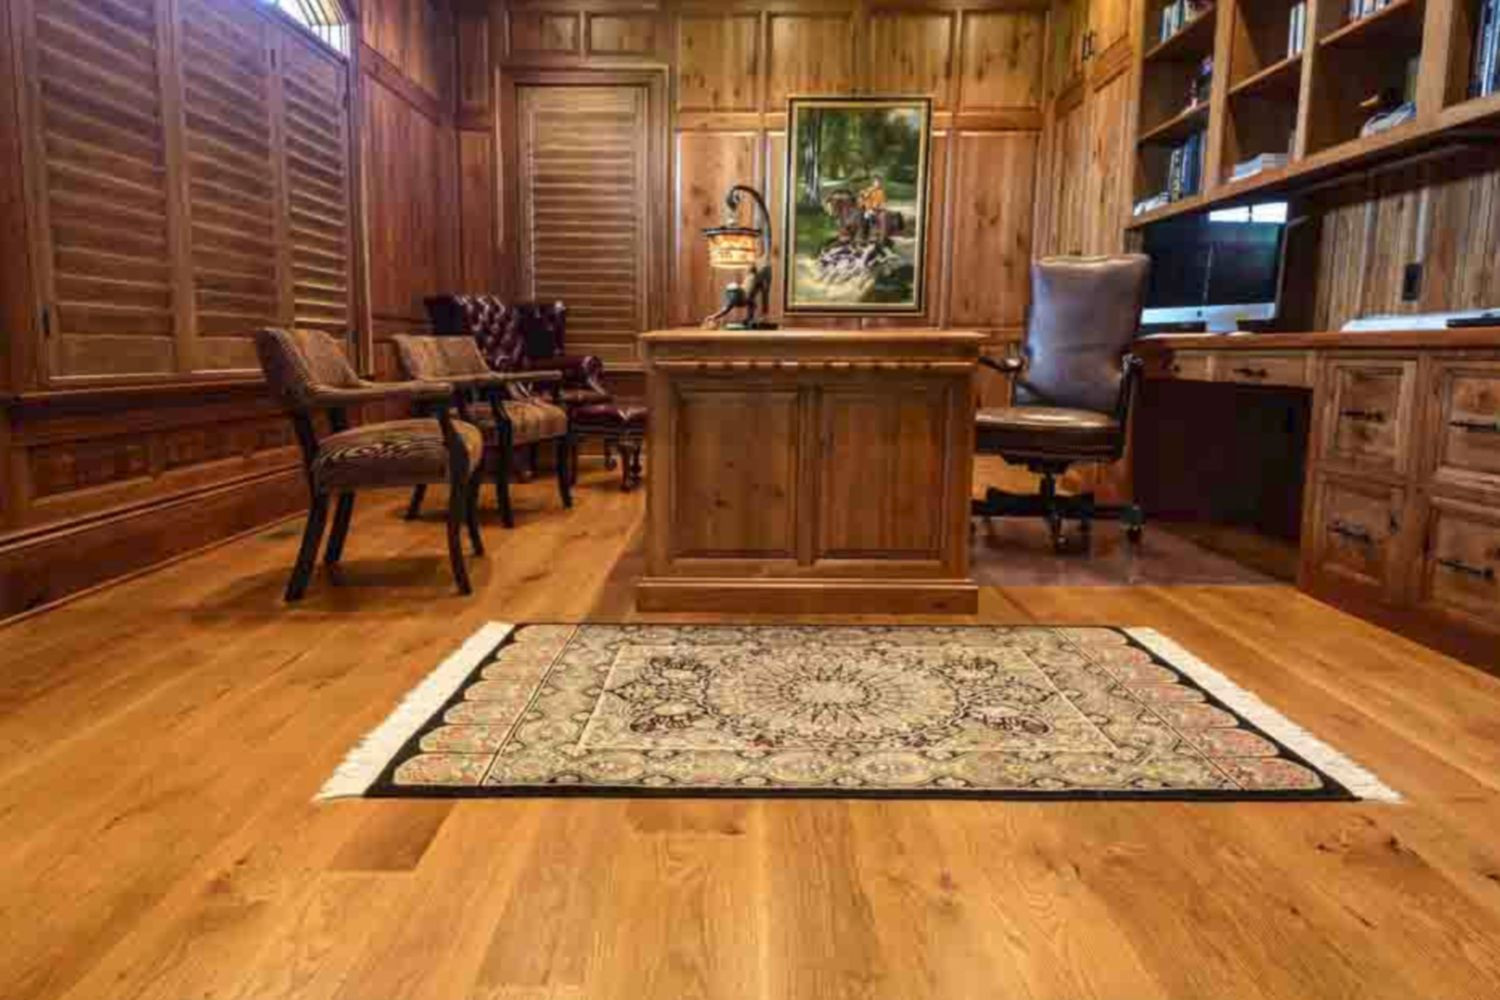 bruce white oak hardwood flooring of top 5 brands for solid hardwood flooring in the woods company white oak 1500 x 1000 56a49f6d5f9b58b7d0d7e1db